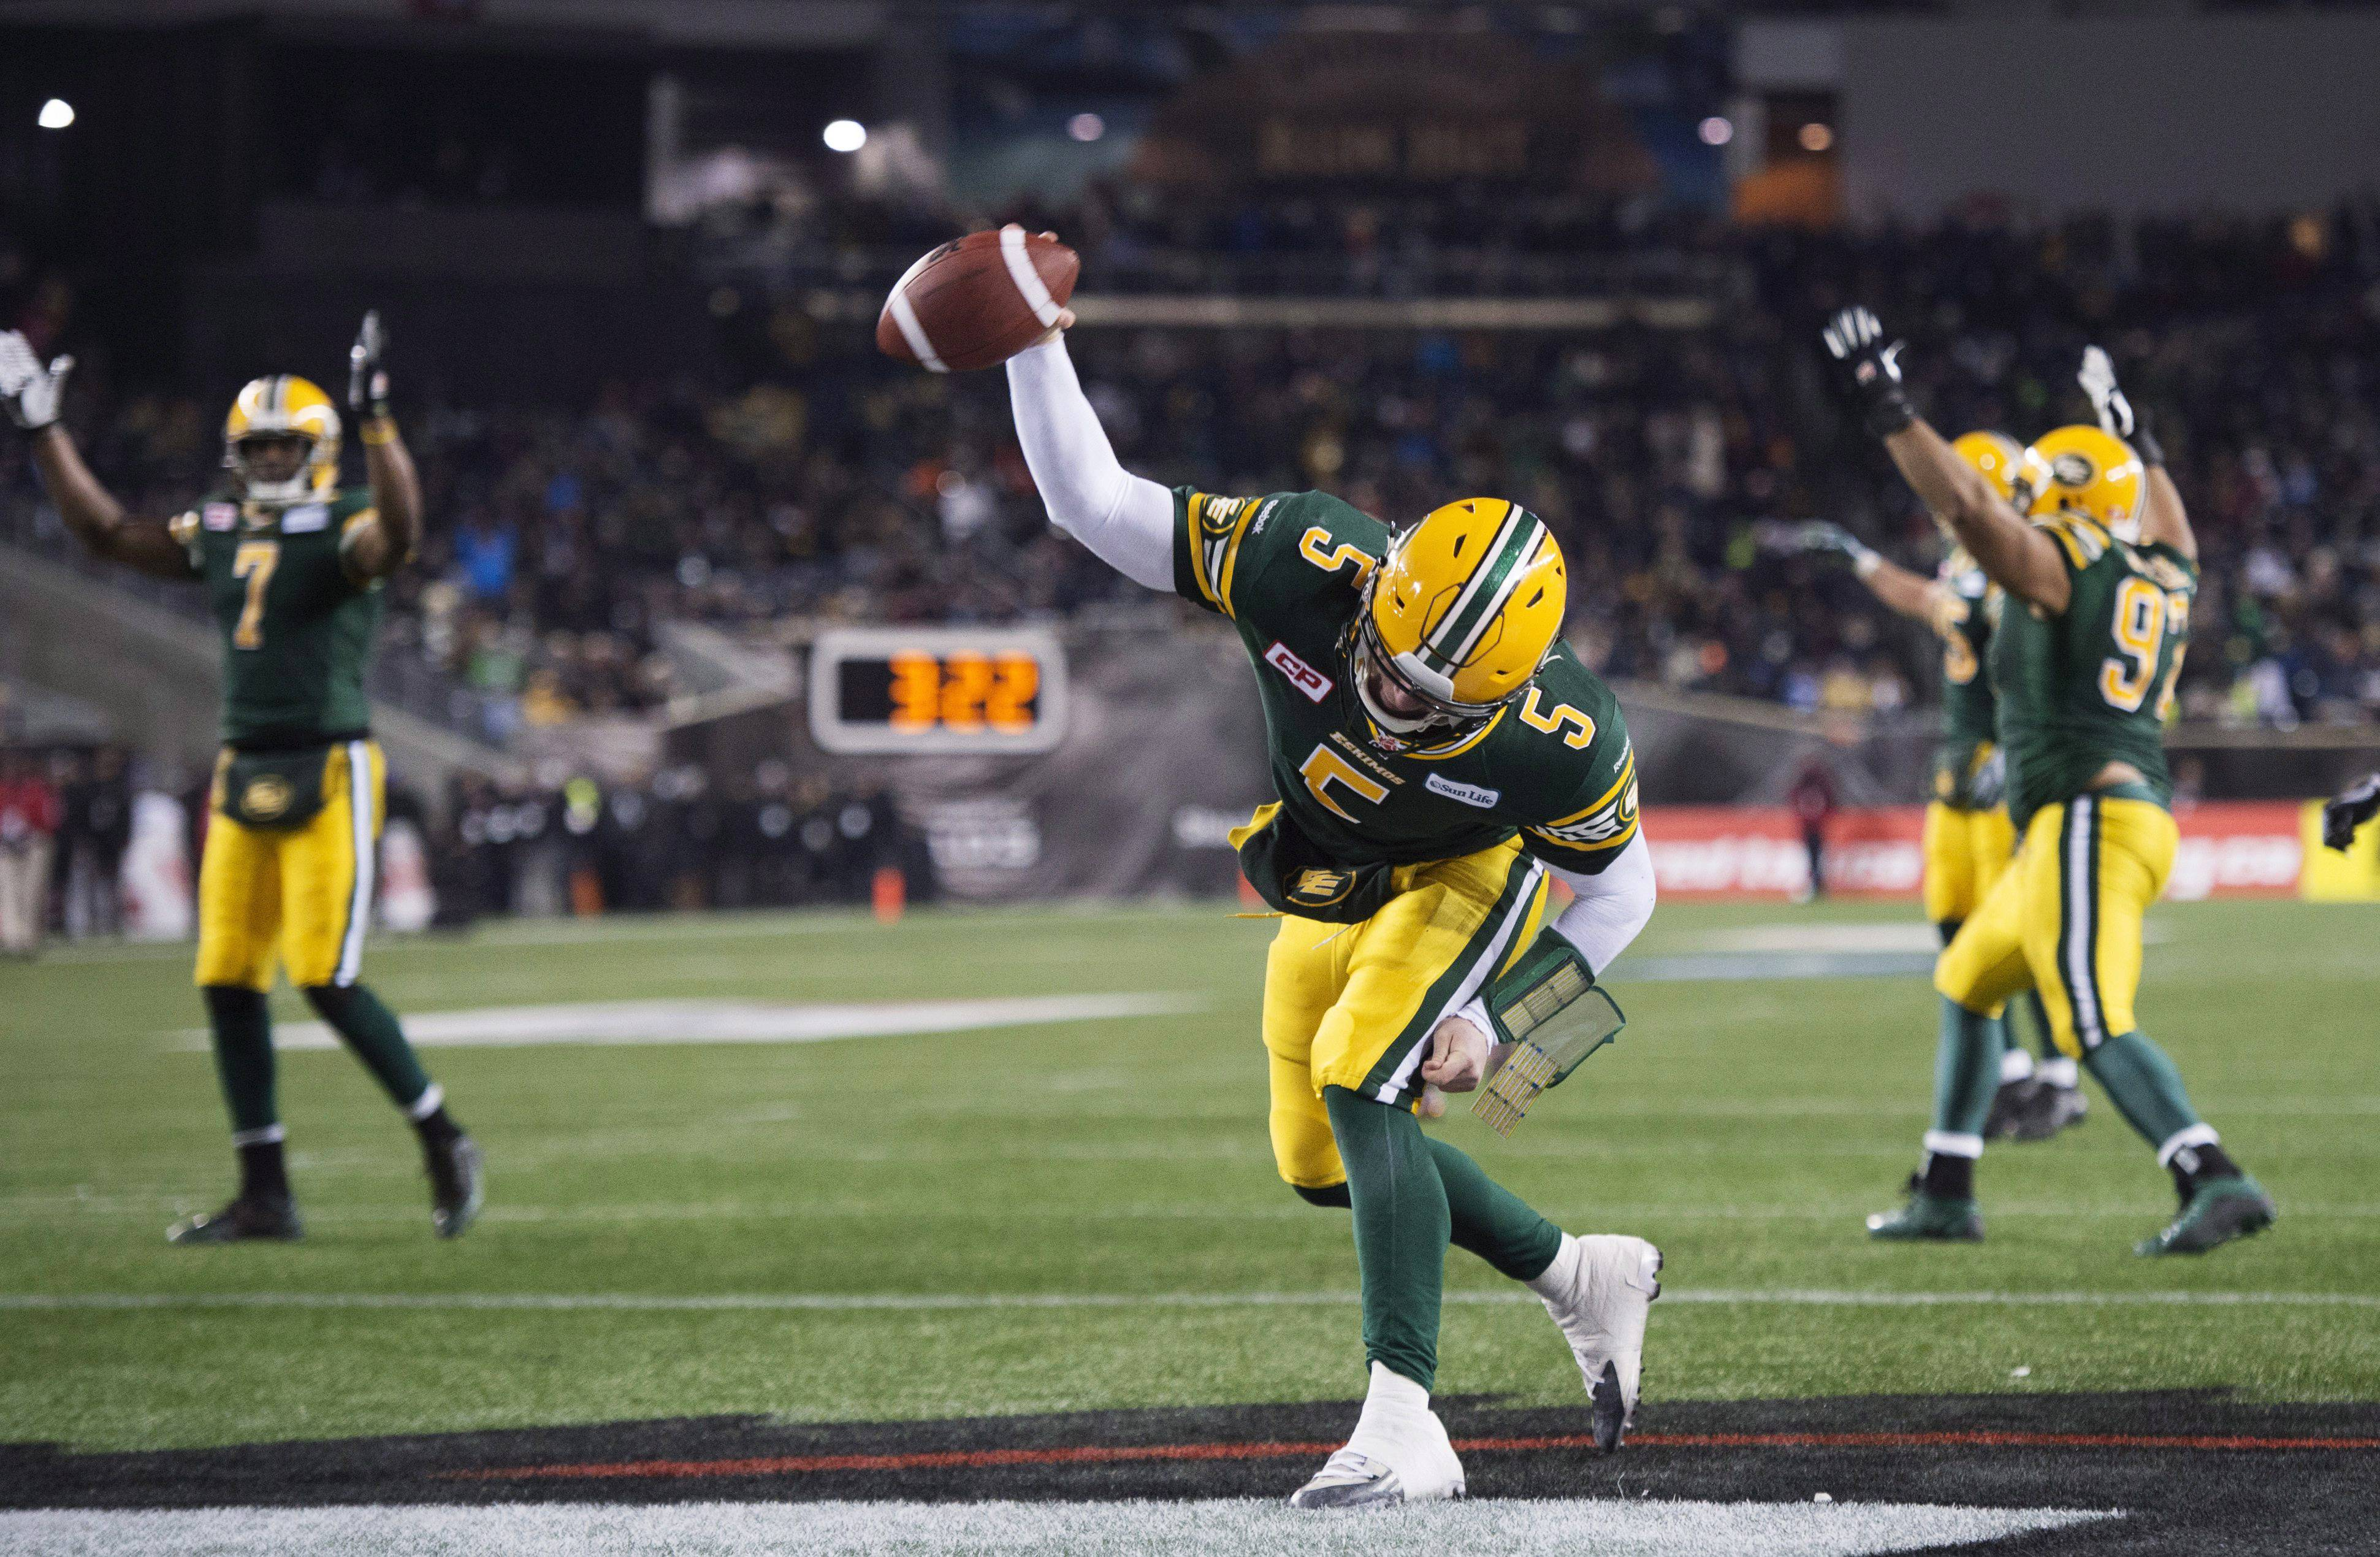 Edmonton Eskimos' quarterback Jordan Lynch scores the game-winning touchdown Sunday during the second half of the 103rd Grey Cup football game against the Ottawa Redblacks in Winnipeg, Manitoba.